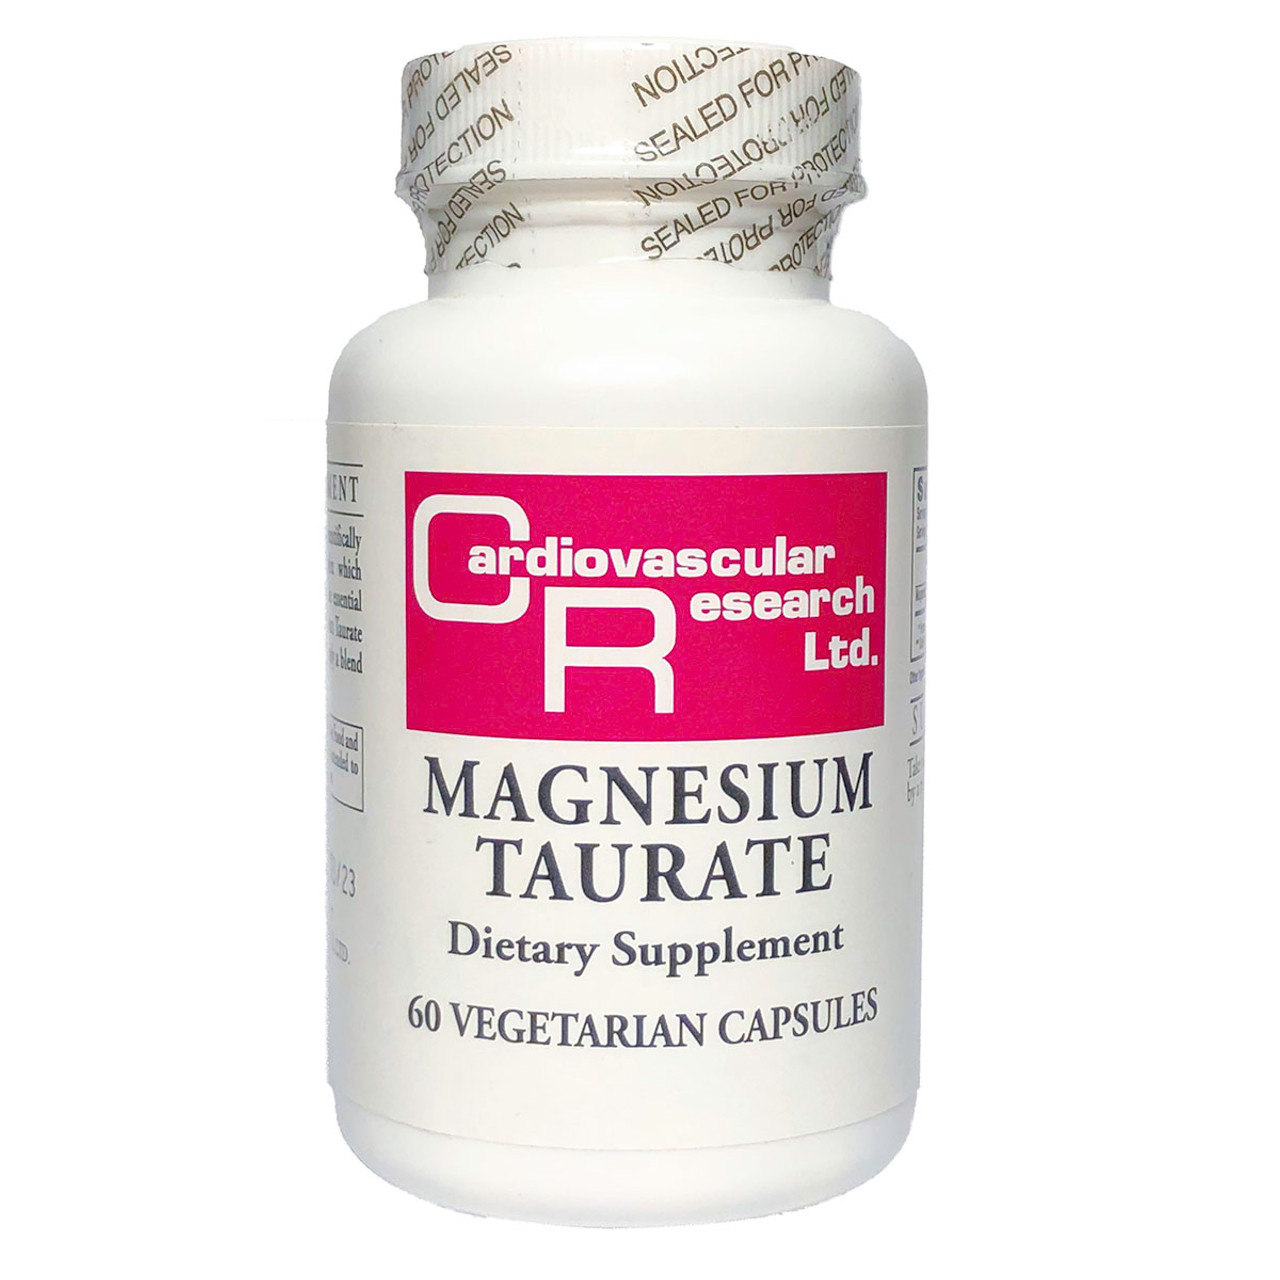 Magnesium Taurate 60 VCaps (125 mg)